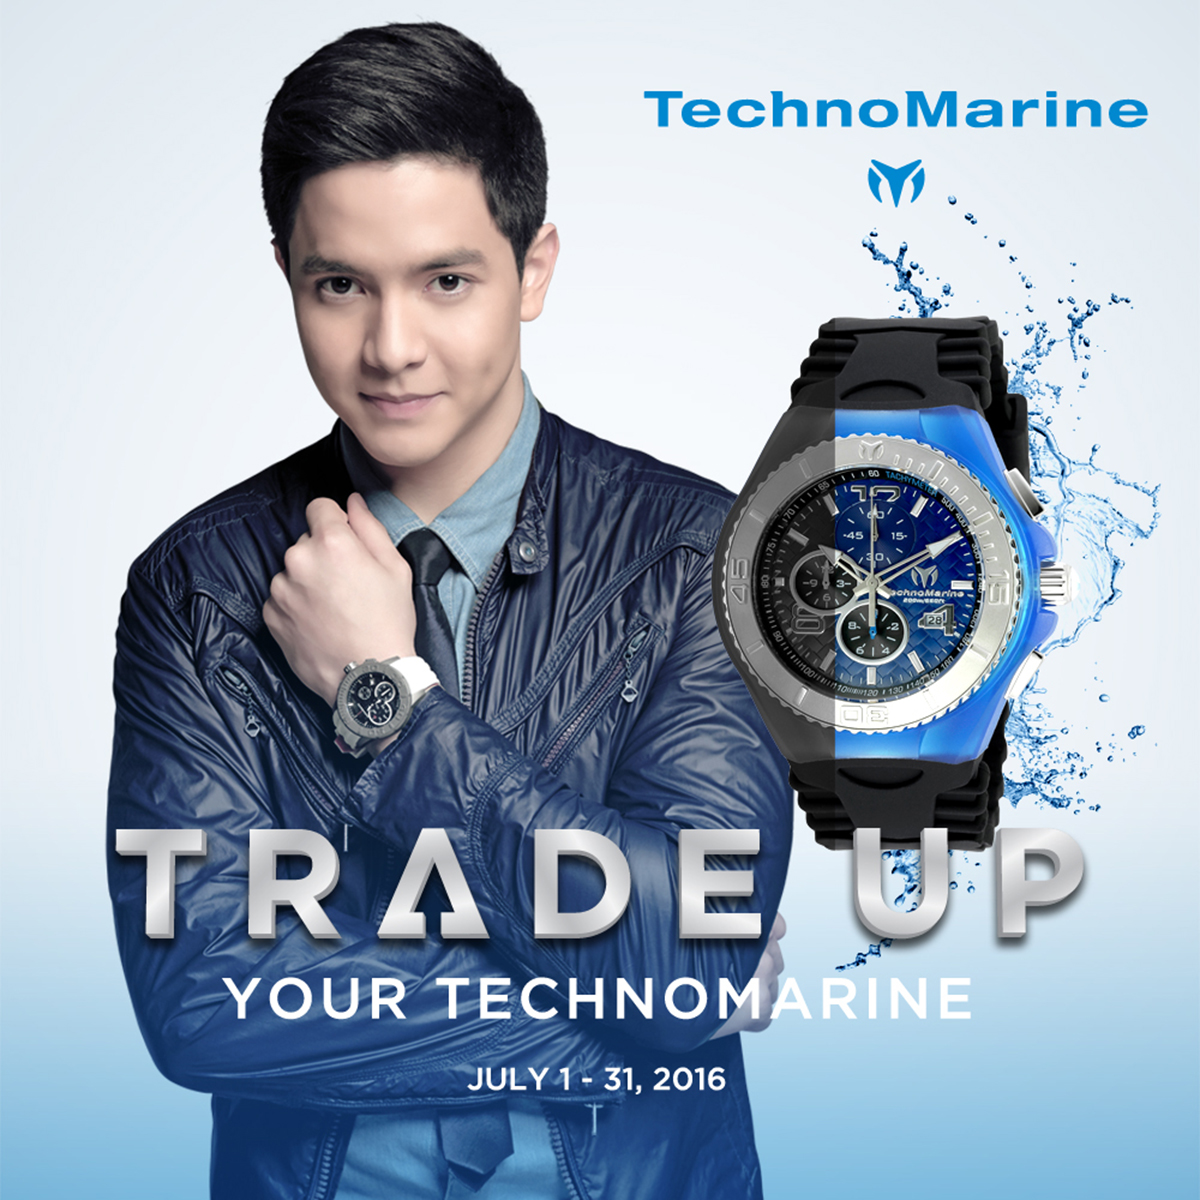 TechnoMarine Trade-Up 2016